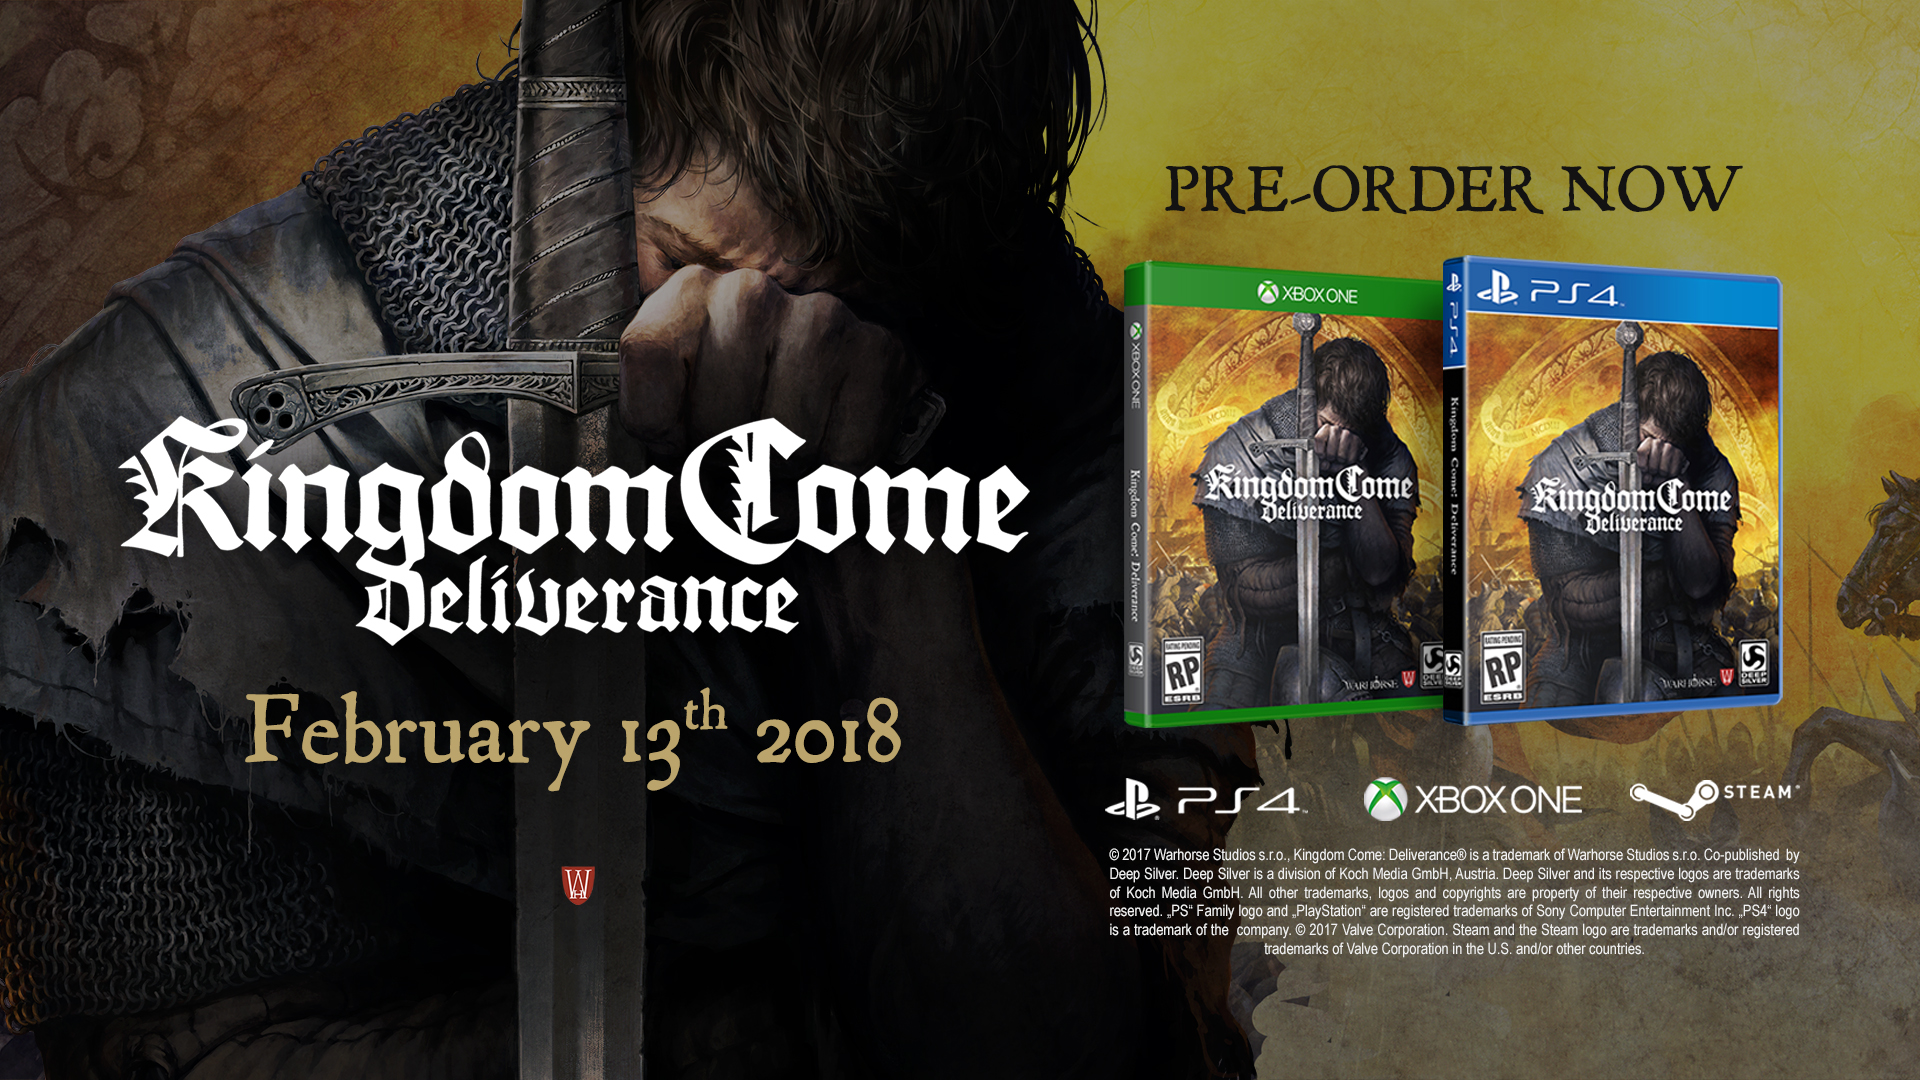 Kingdom come release date in Melbourne